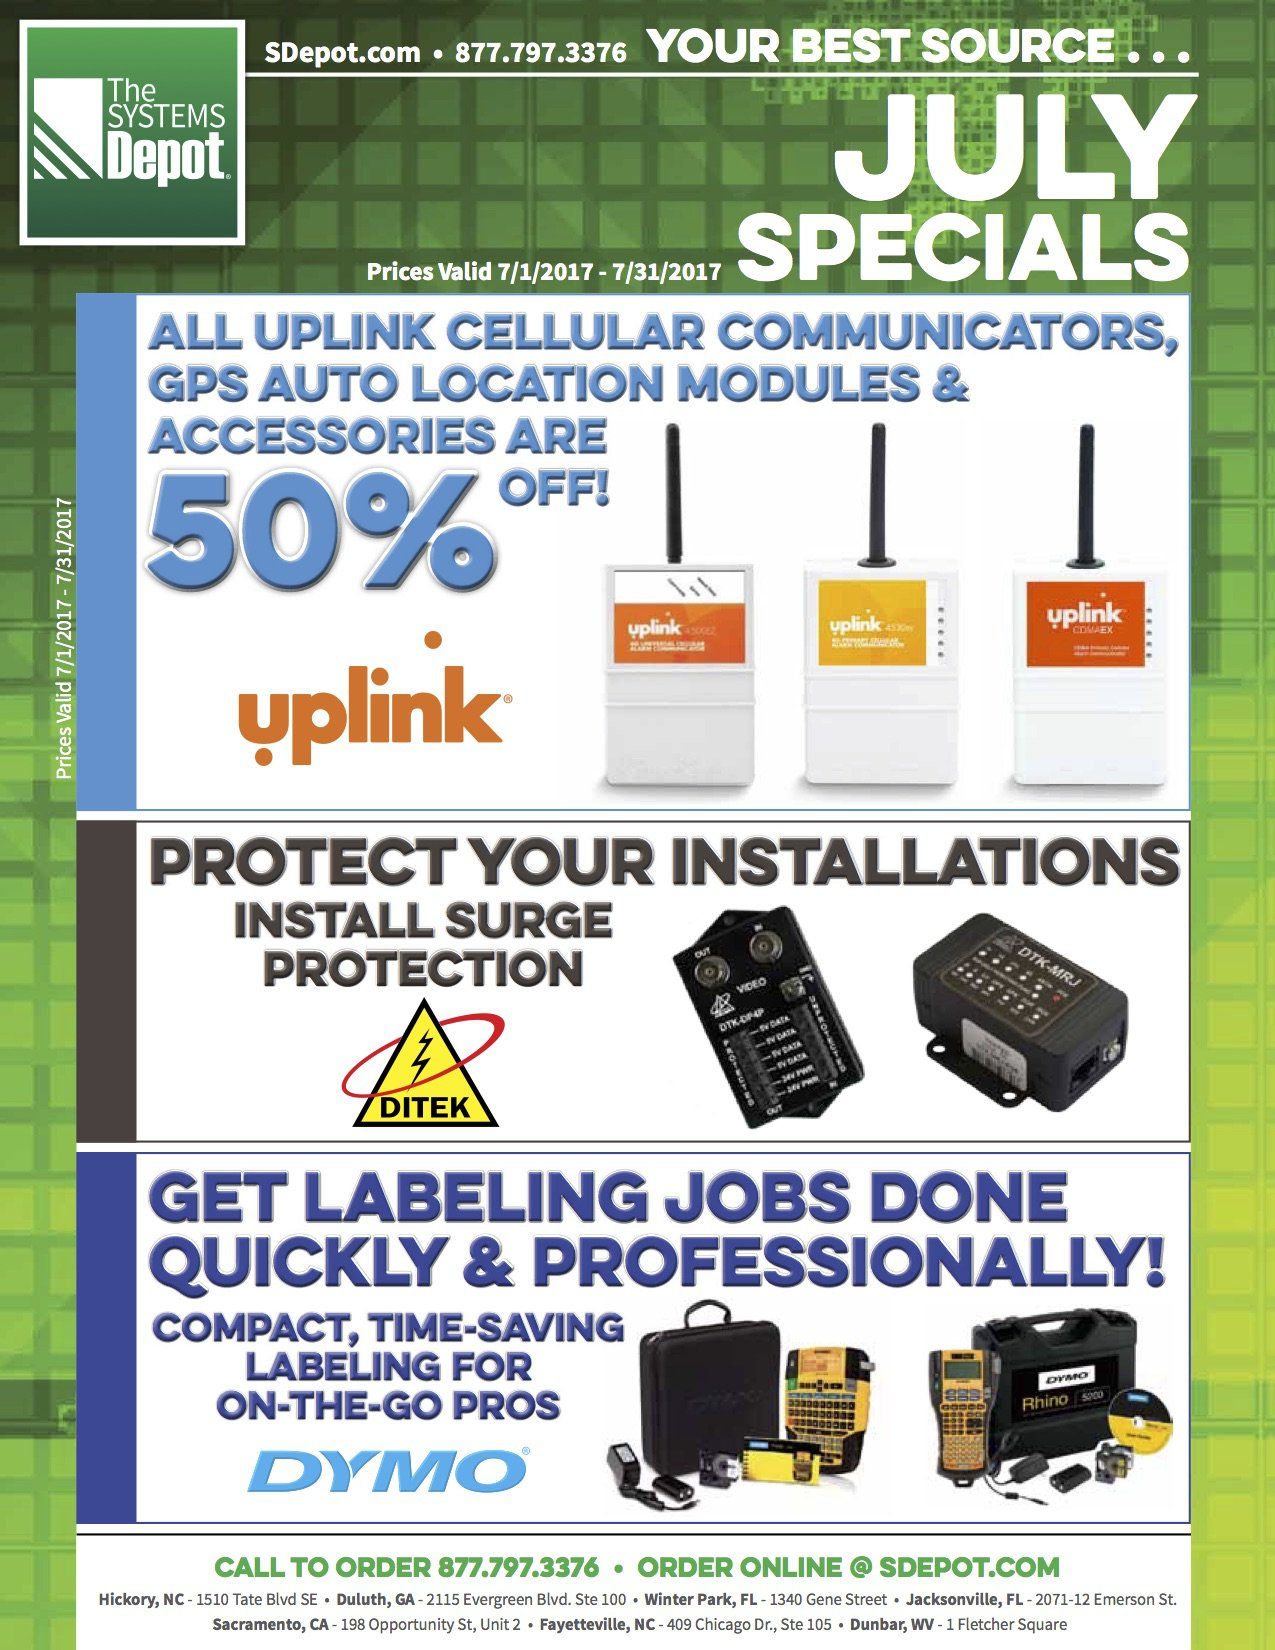 Systems Depot newsletter